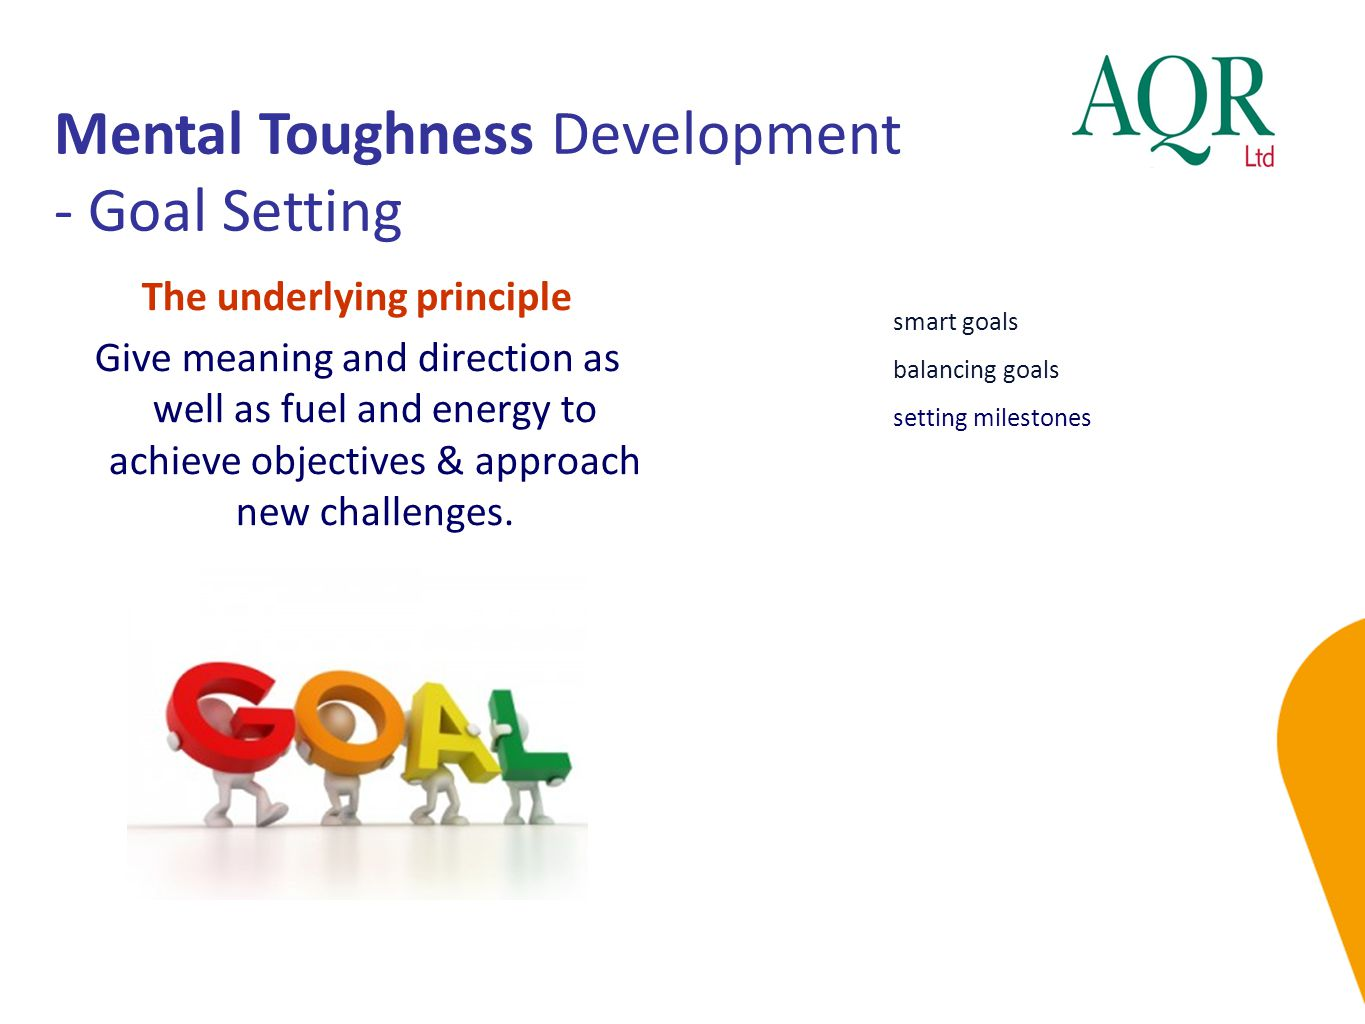 Mental Toughness Development - Goal Setting